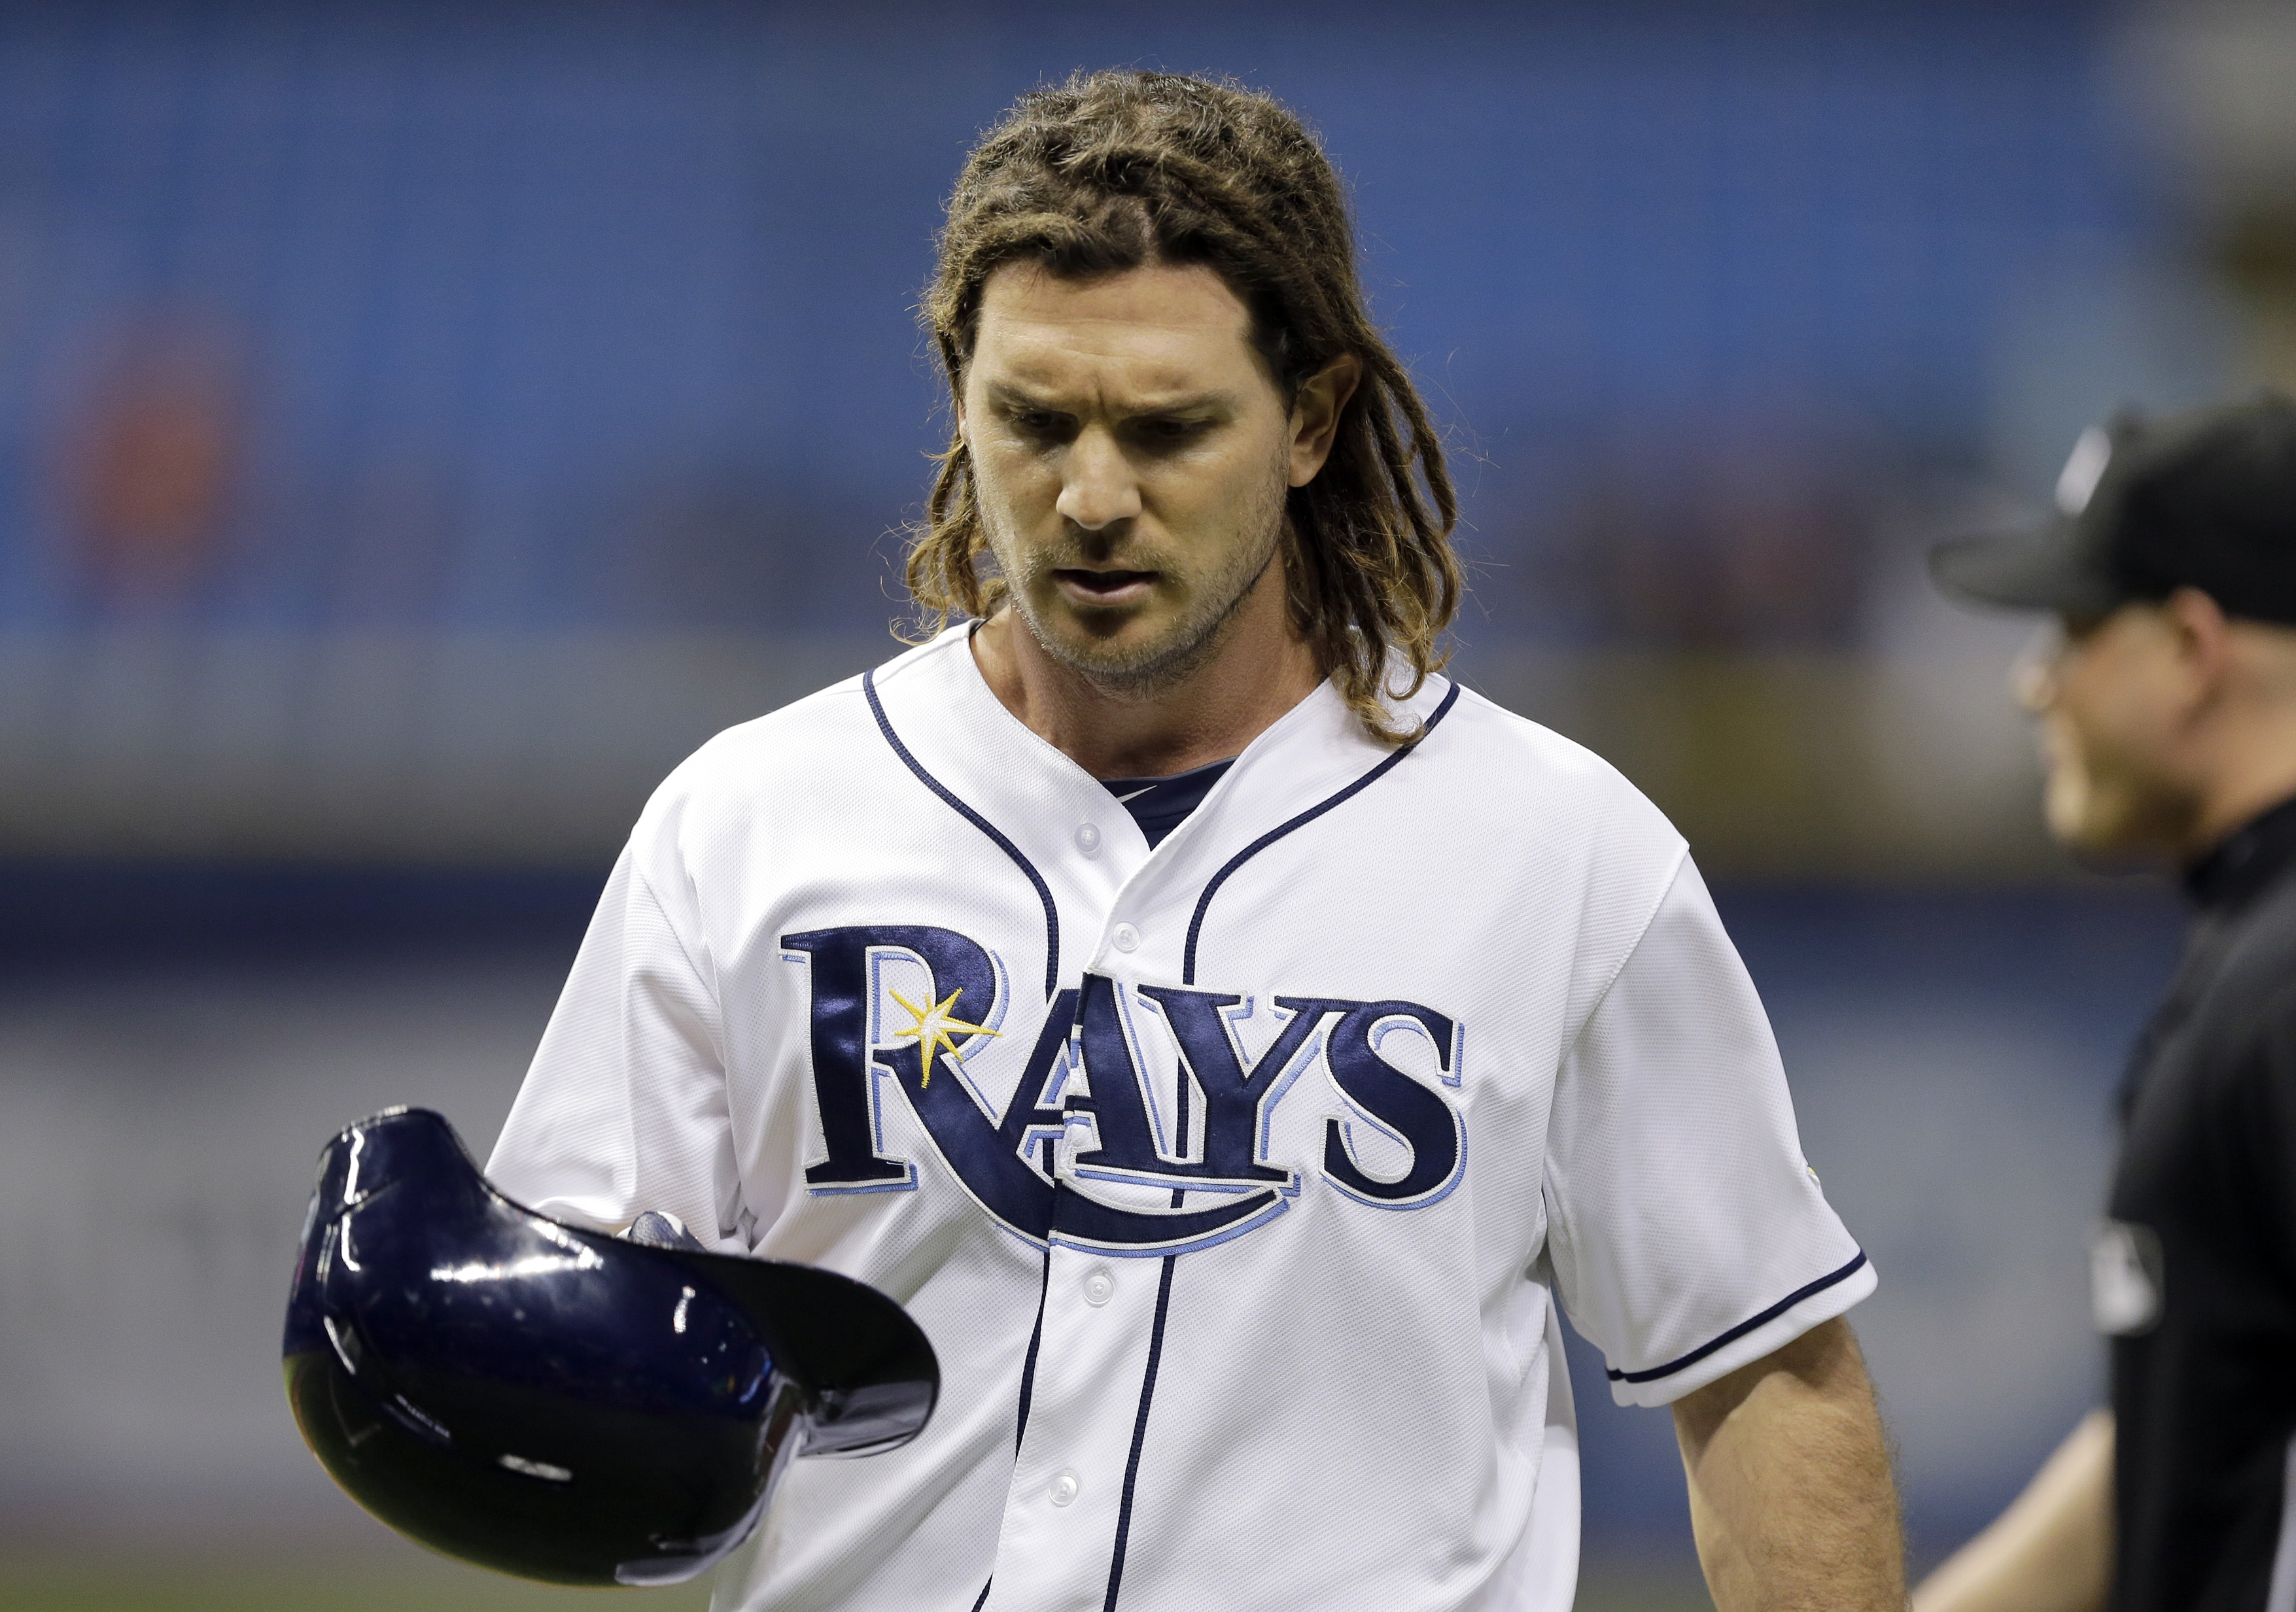 Tampa Bay Rays' John Jaso reacts after making the last out against Baltimore Orioles relief pitcher Darren O'Day during a baseball game Thursday, Sept. 17, 2015, in St. Petersburg, Fla.  The Orioles won 4-3. (AP Photo/Chris O'Meara)